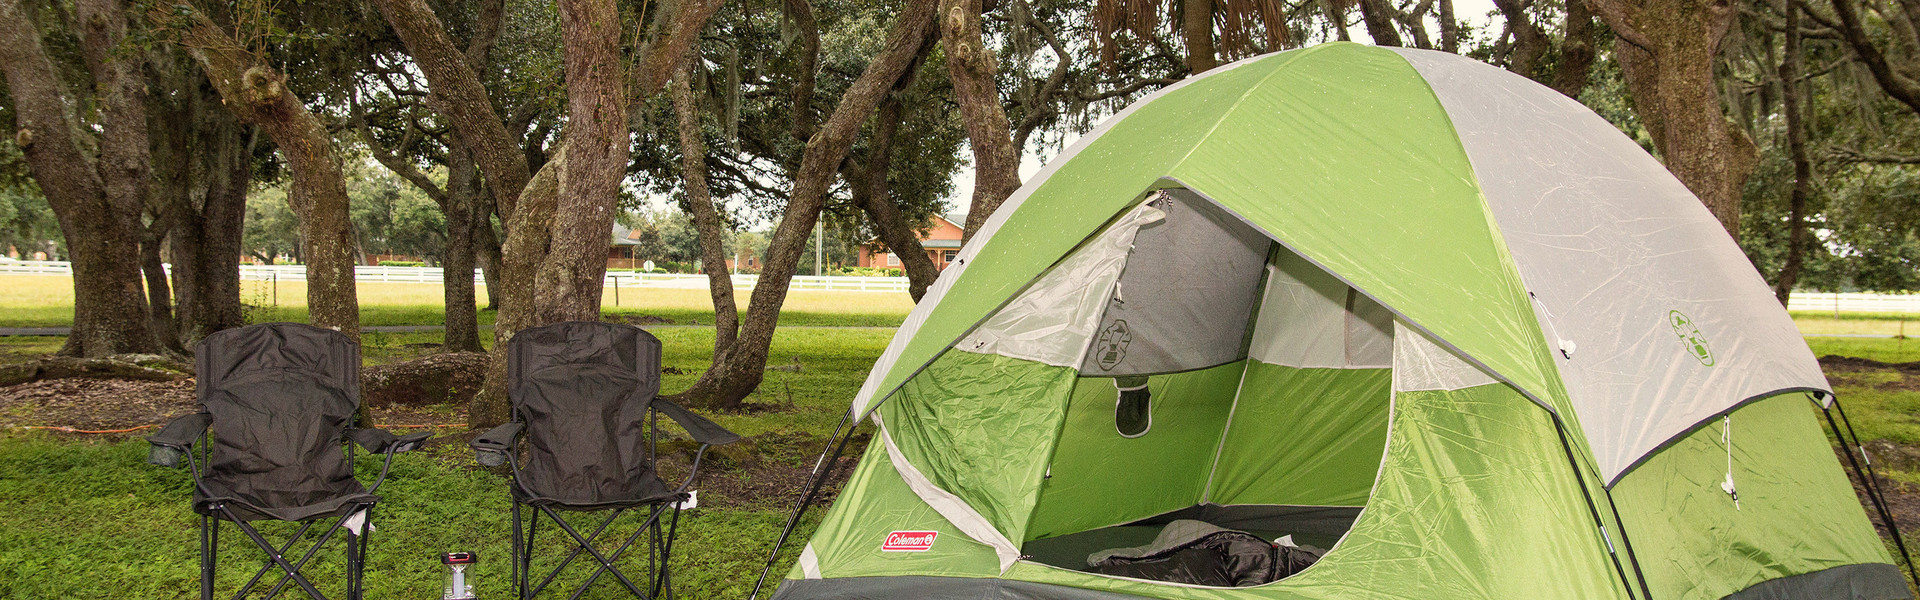 Tent Camping in Florida near Orlando | Campsite at Ranch